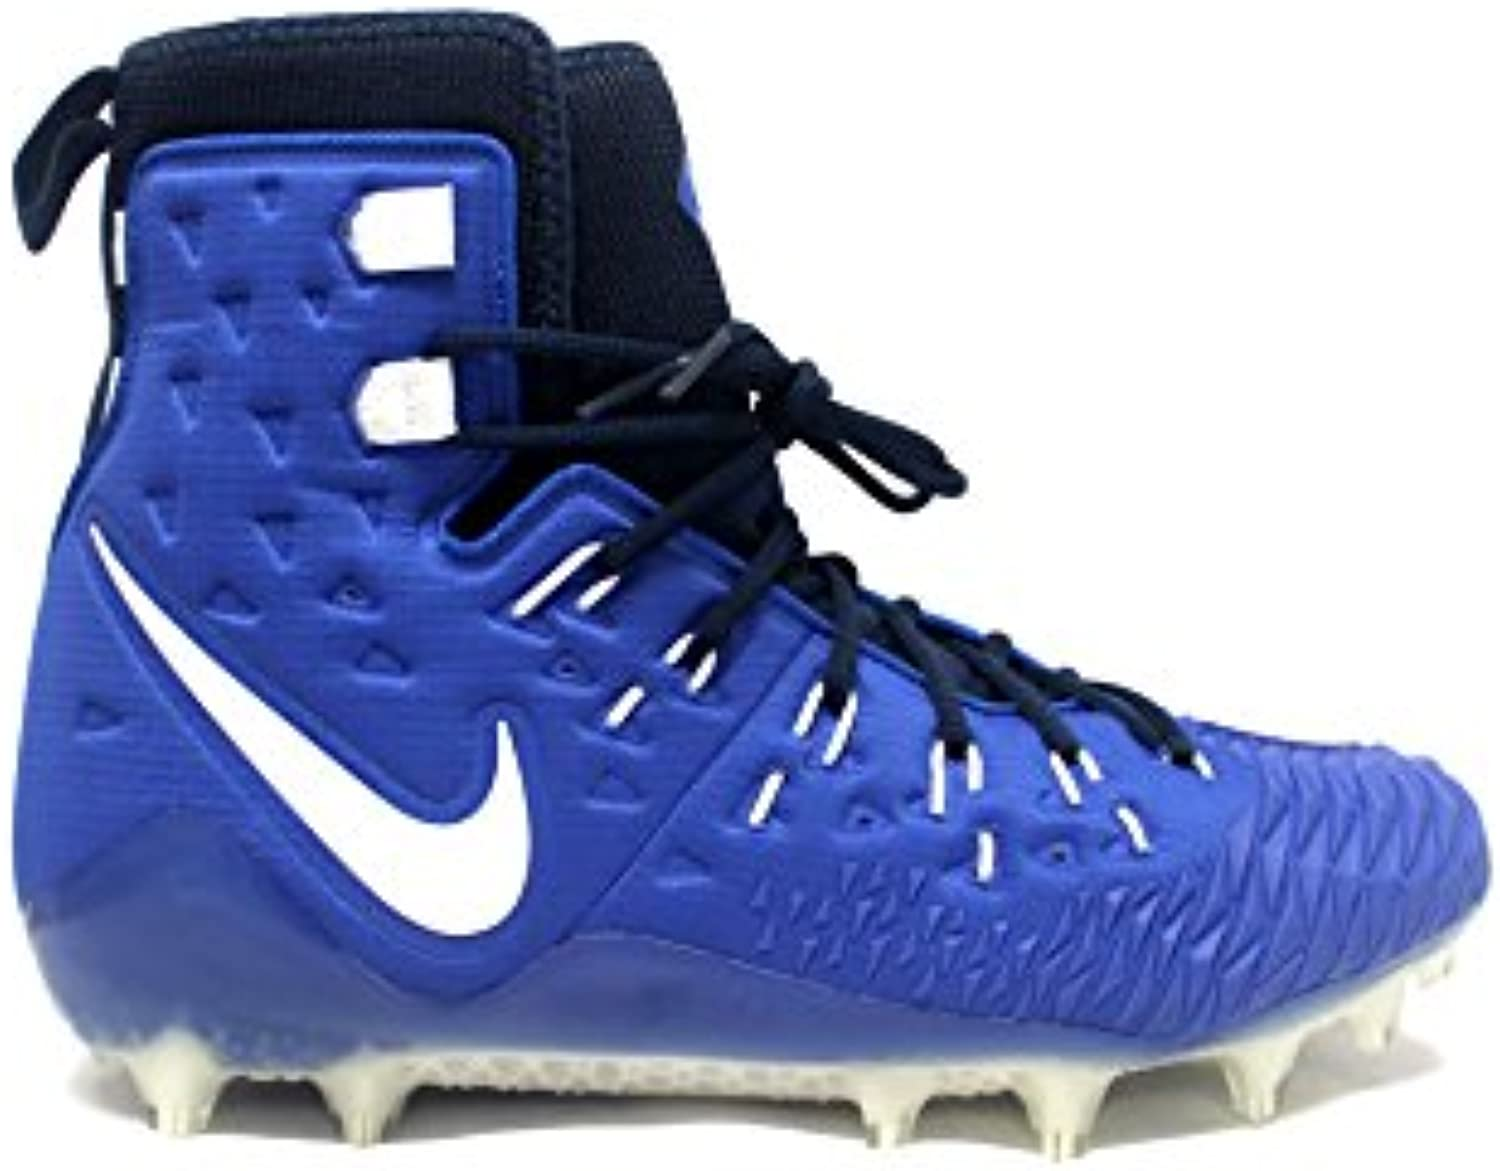 nike football élite hommes de de de td force sauvage taquet (13, match royal / Blanc  college marine) b07f2l1fw6 parent 6a8707